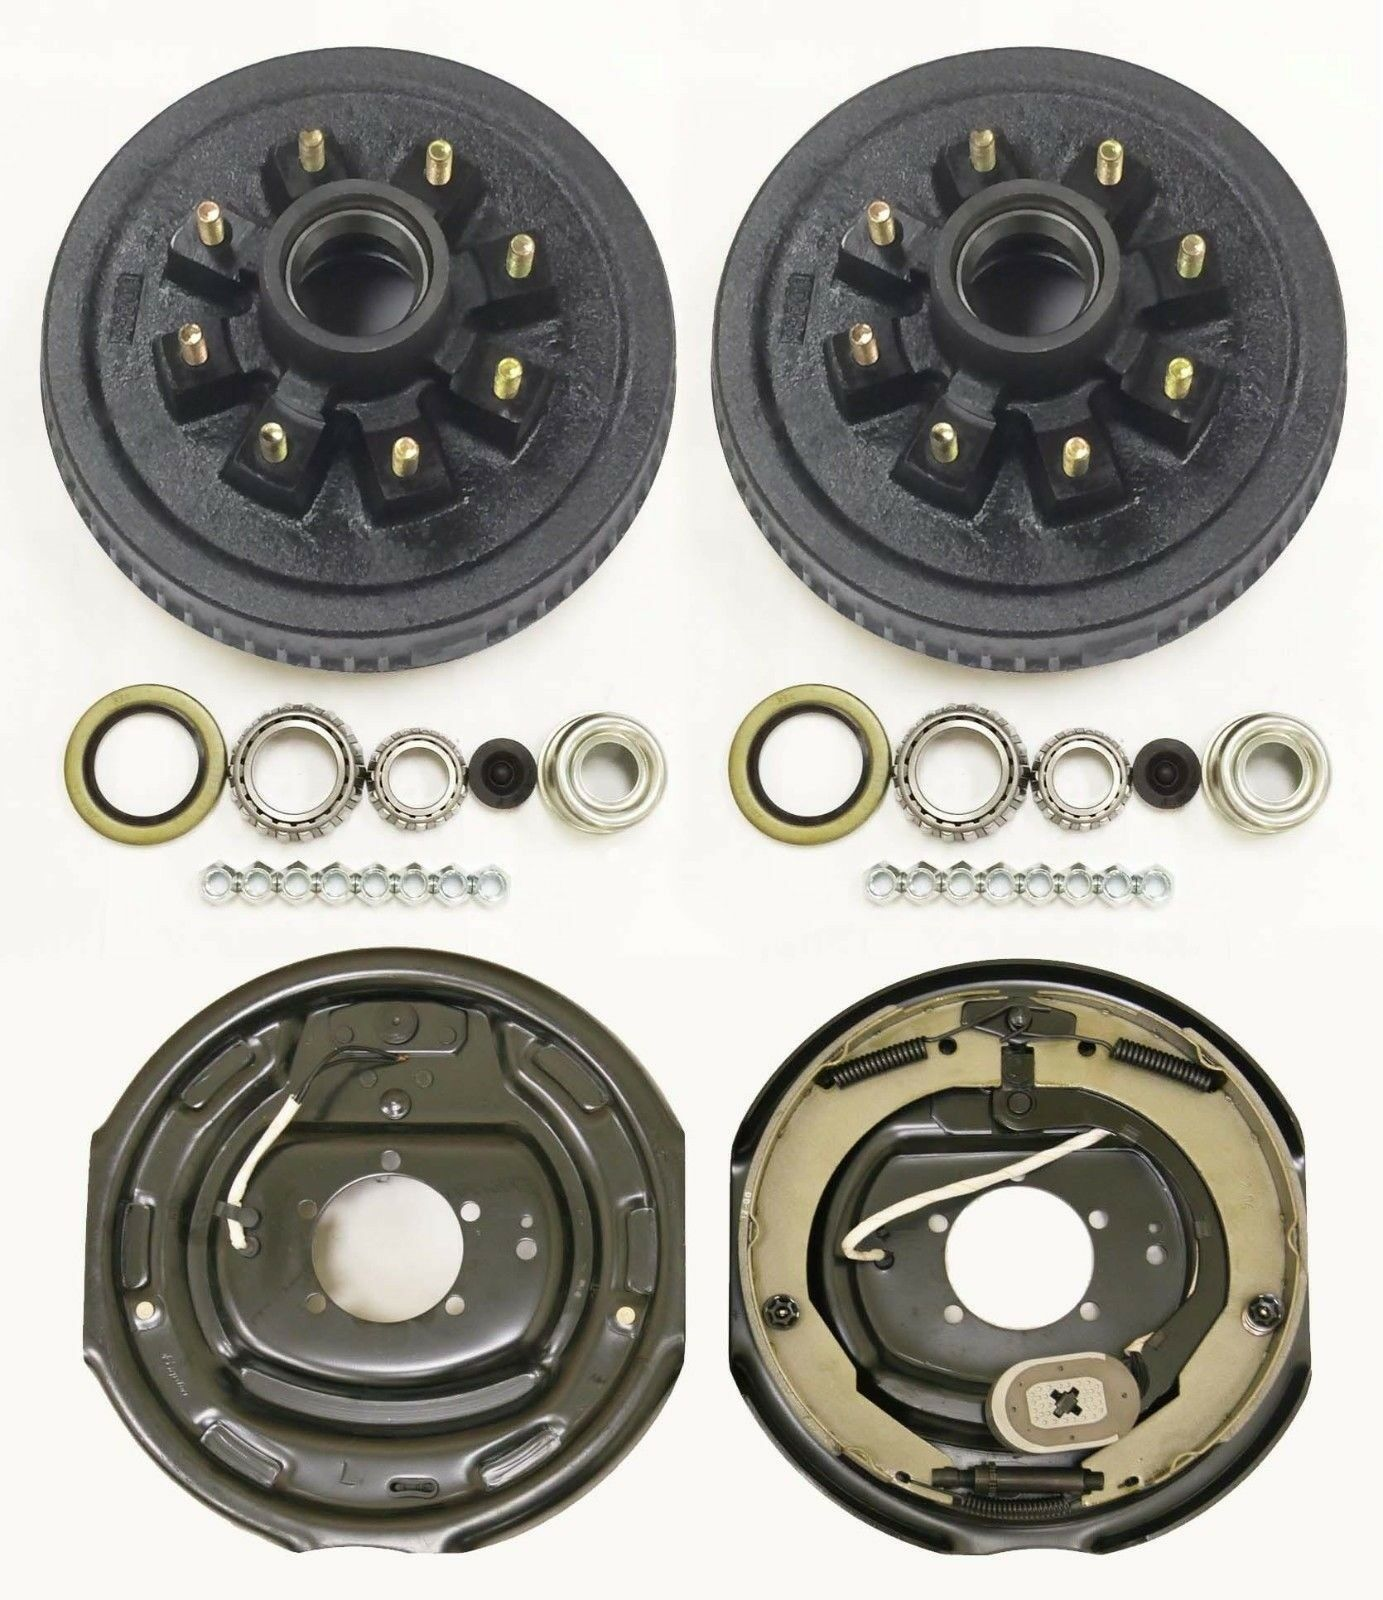 "Trailer 8 on 6.5"" Hub Drum Kits with 12""x2"" Electric Brakes for 7000 lbs axle"